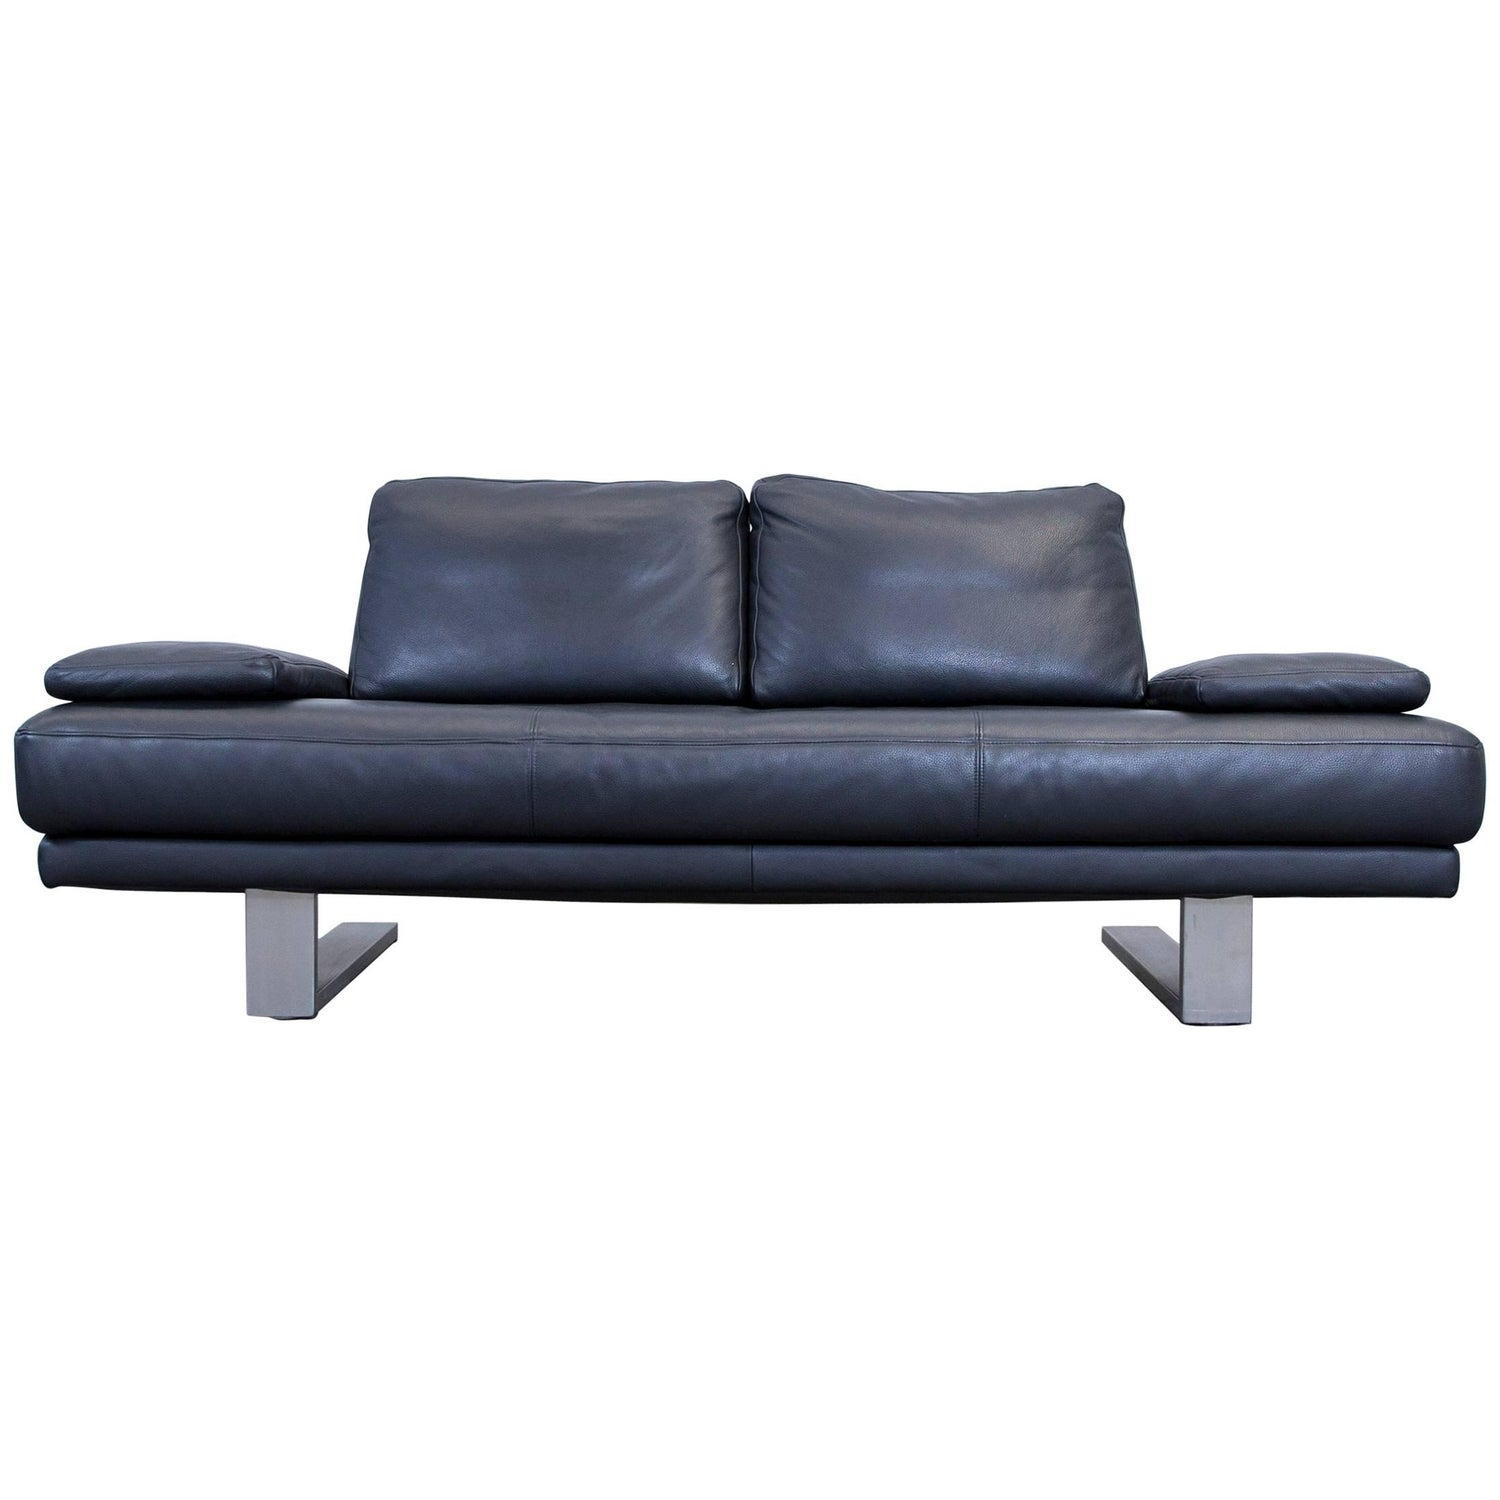 chair leon product furniture charcoal to zoom chairs s hover futon room roxanne living factory item